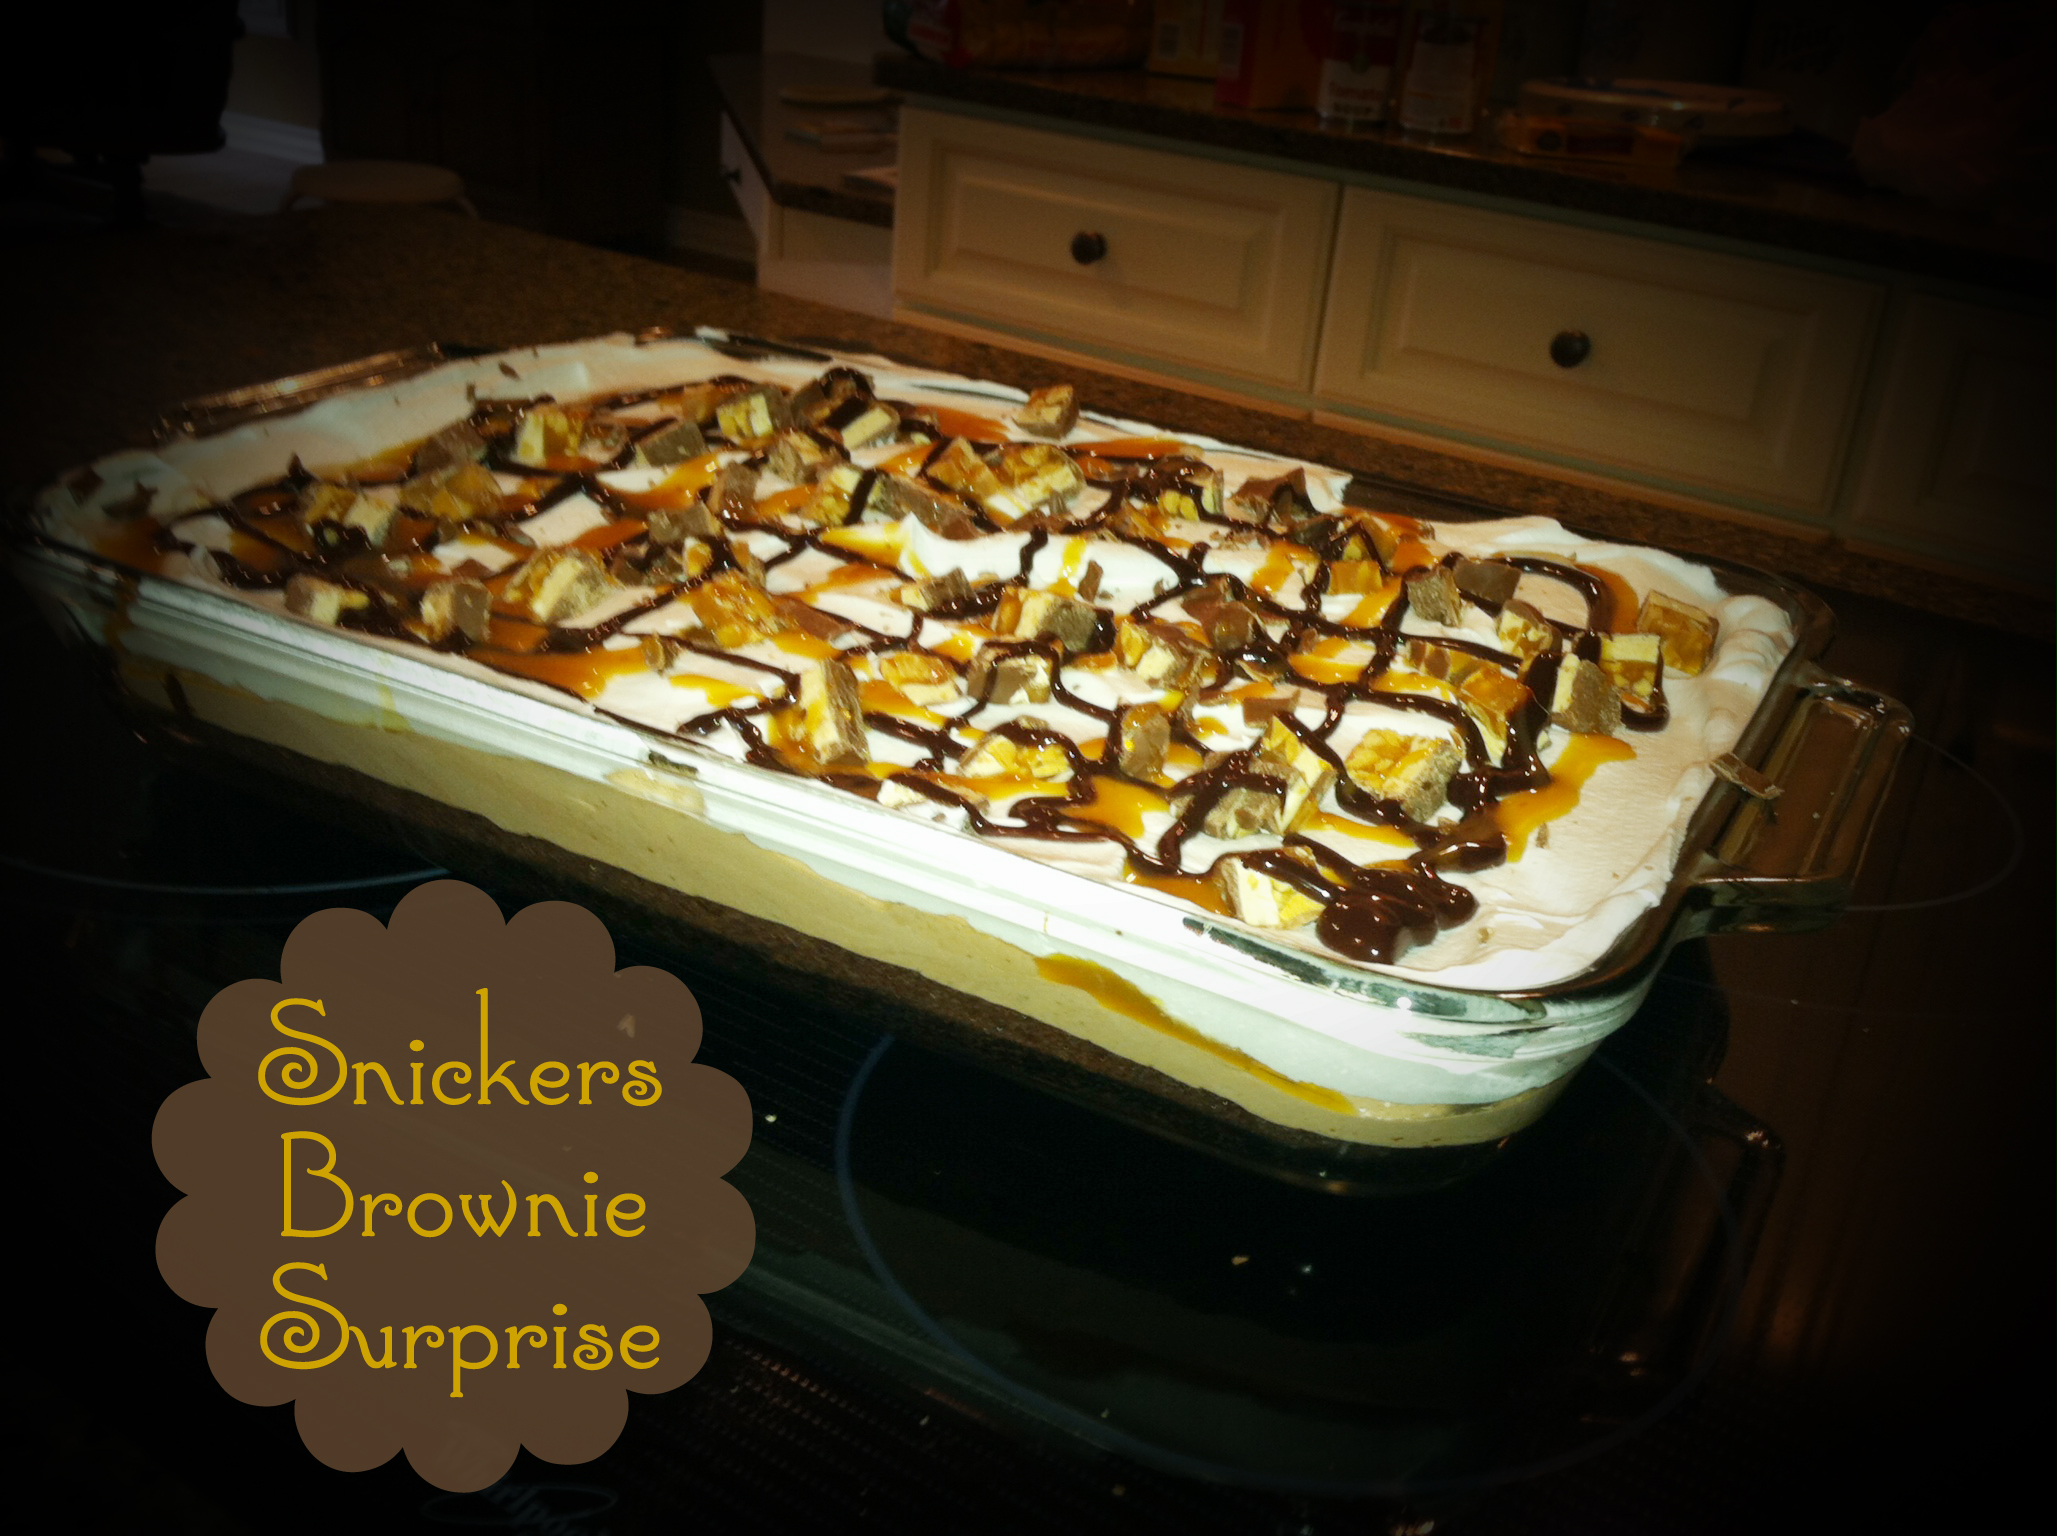 Snickers Brownie Surprise